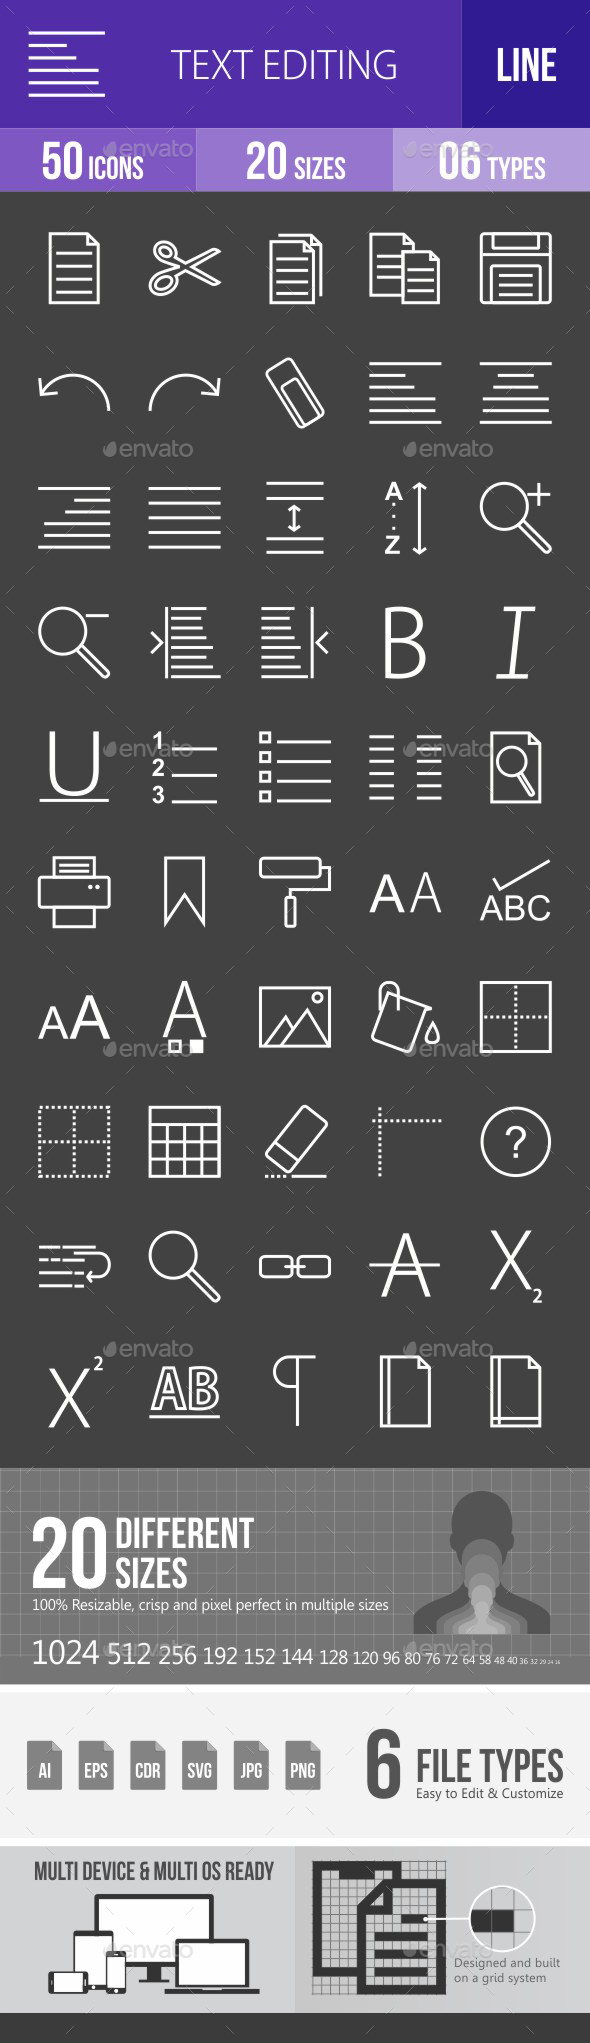 Text Editing Line Inverted Icons - Icons